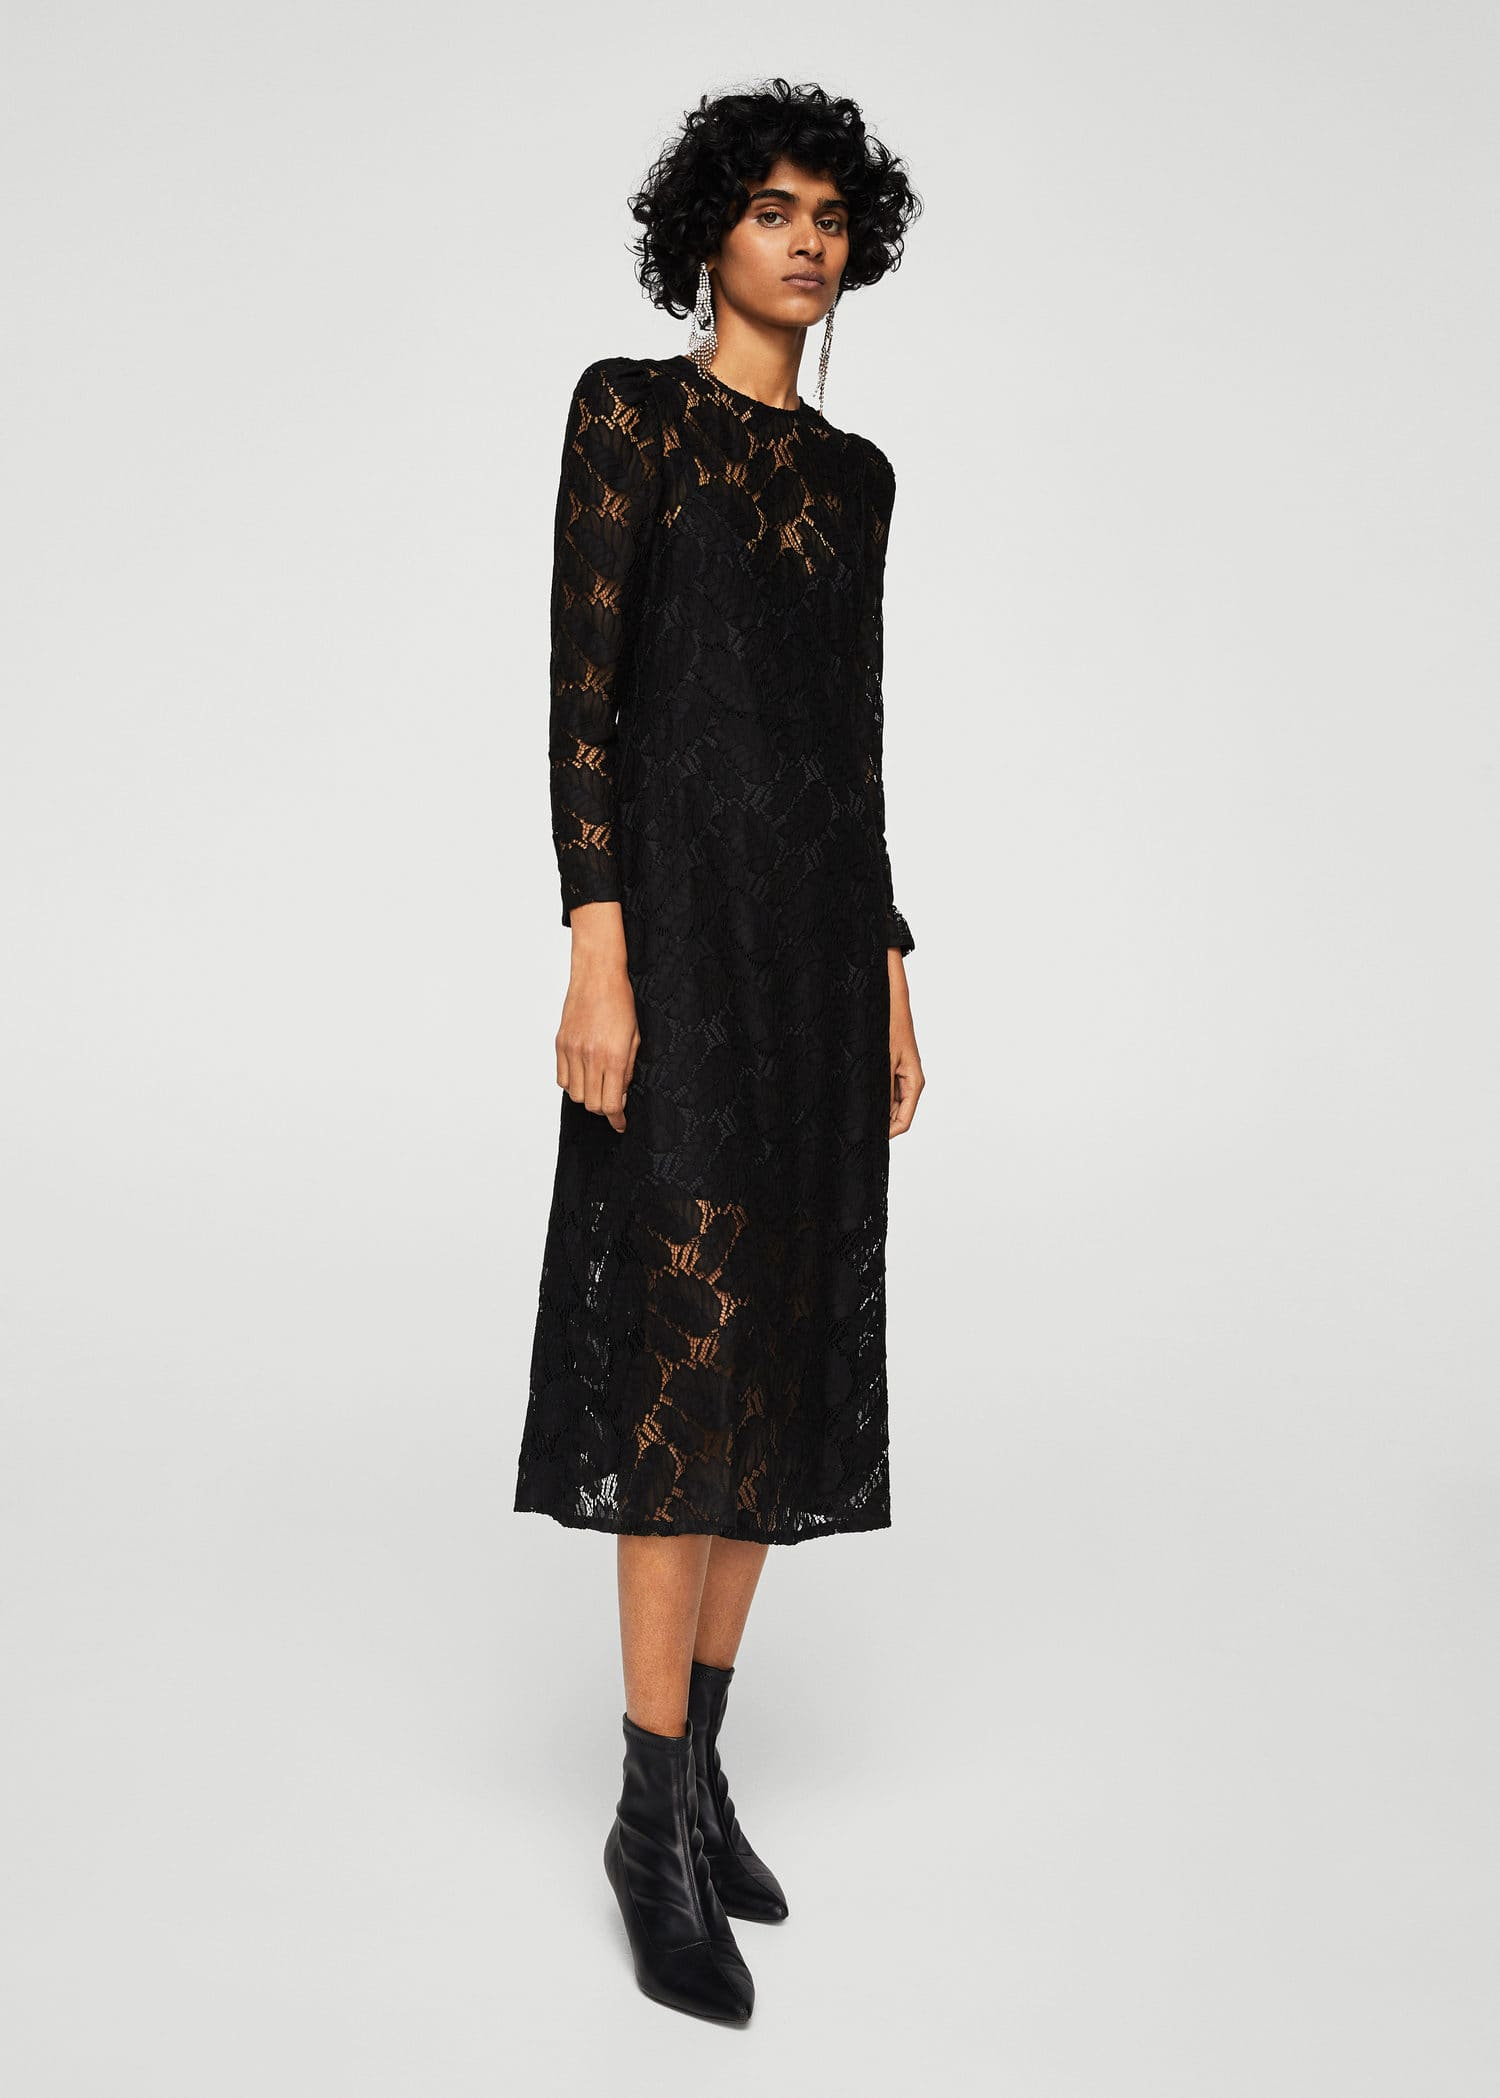 Floral Lace Dress Woman Outlet Norway